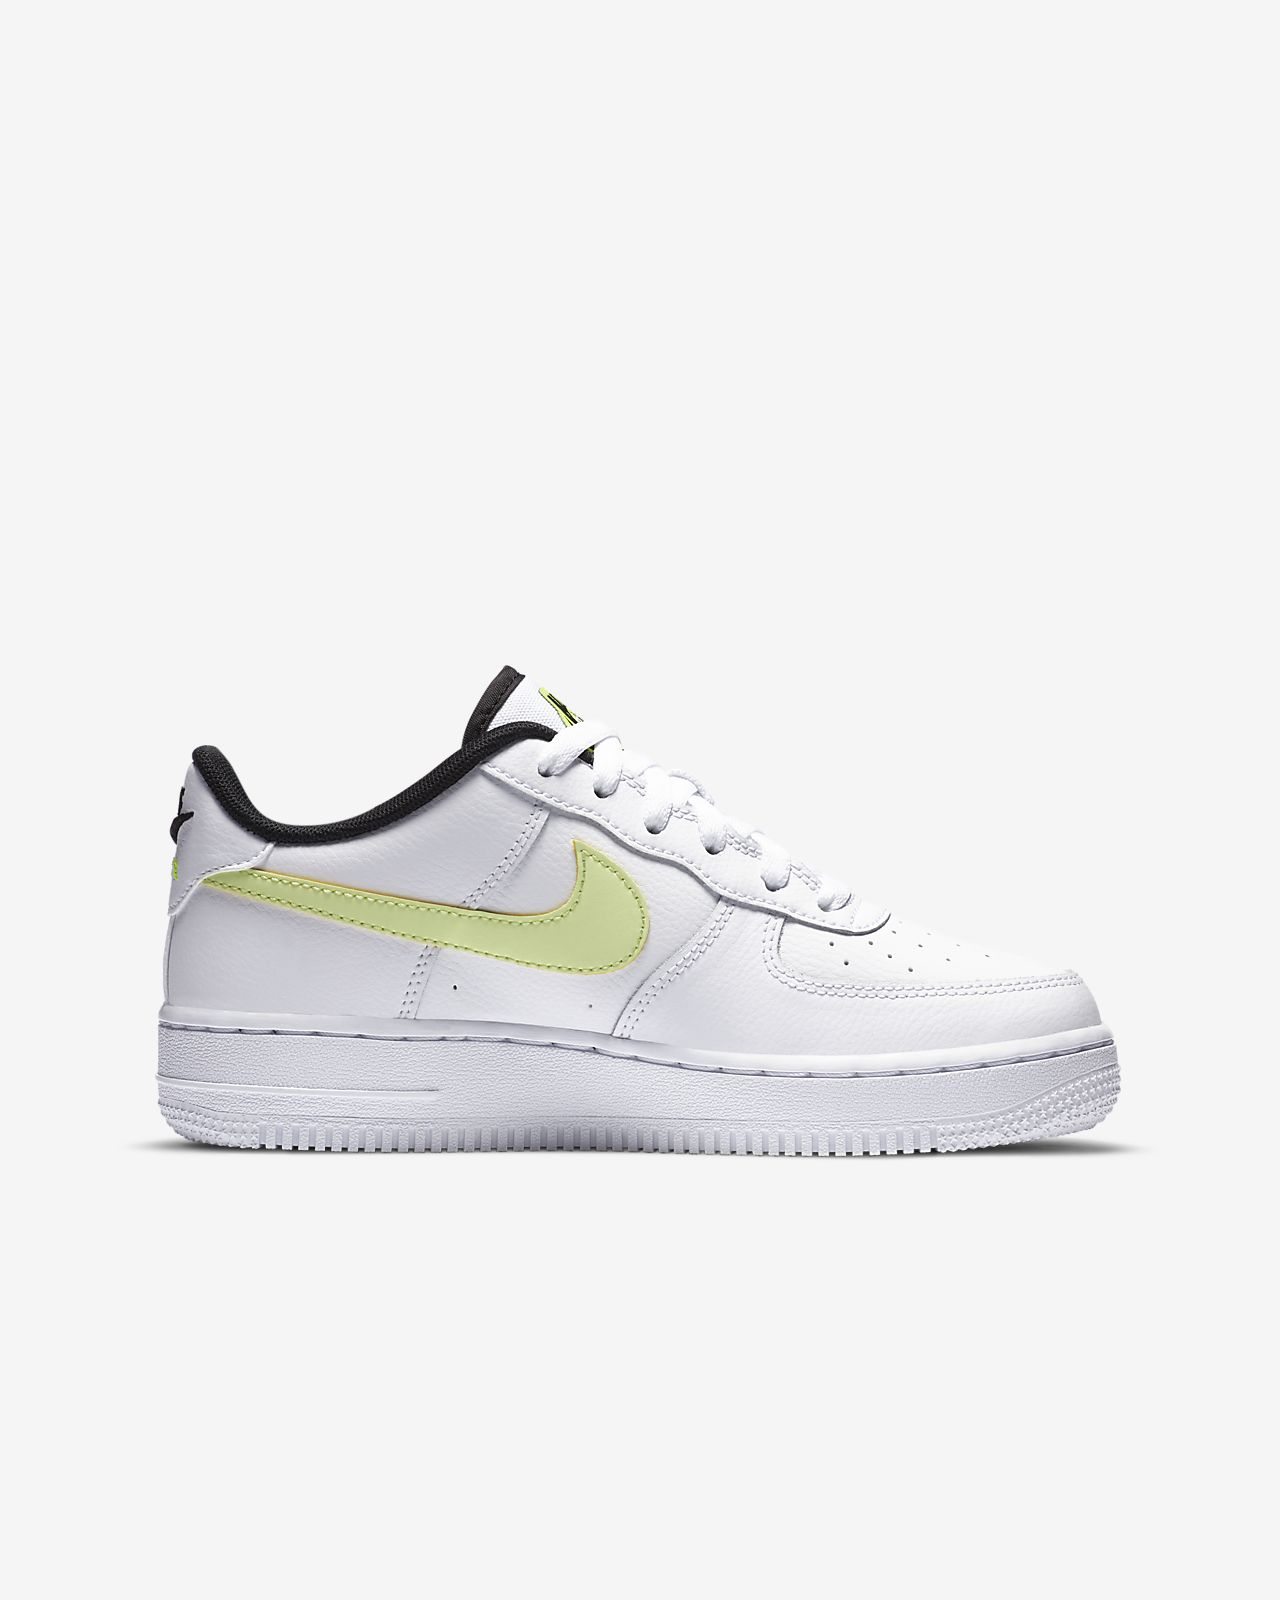 Nike Air Force 1 LV8 3D White | BV2551 100 | The Sole Womens